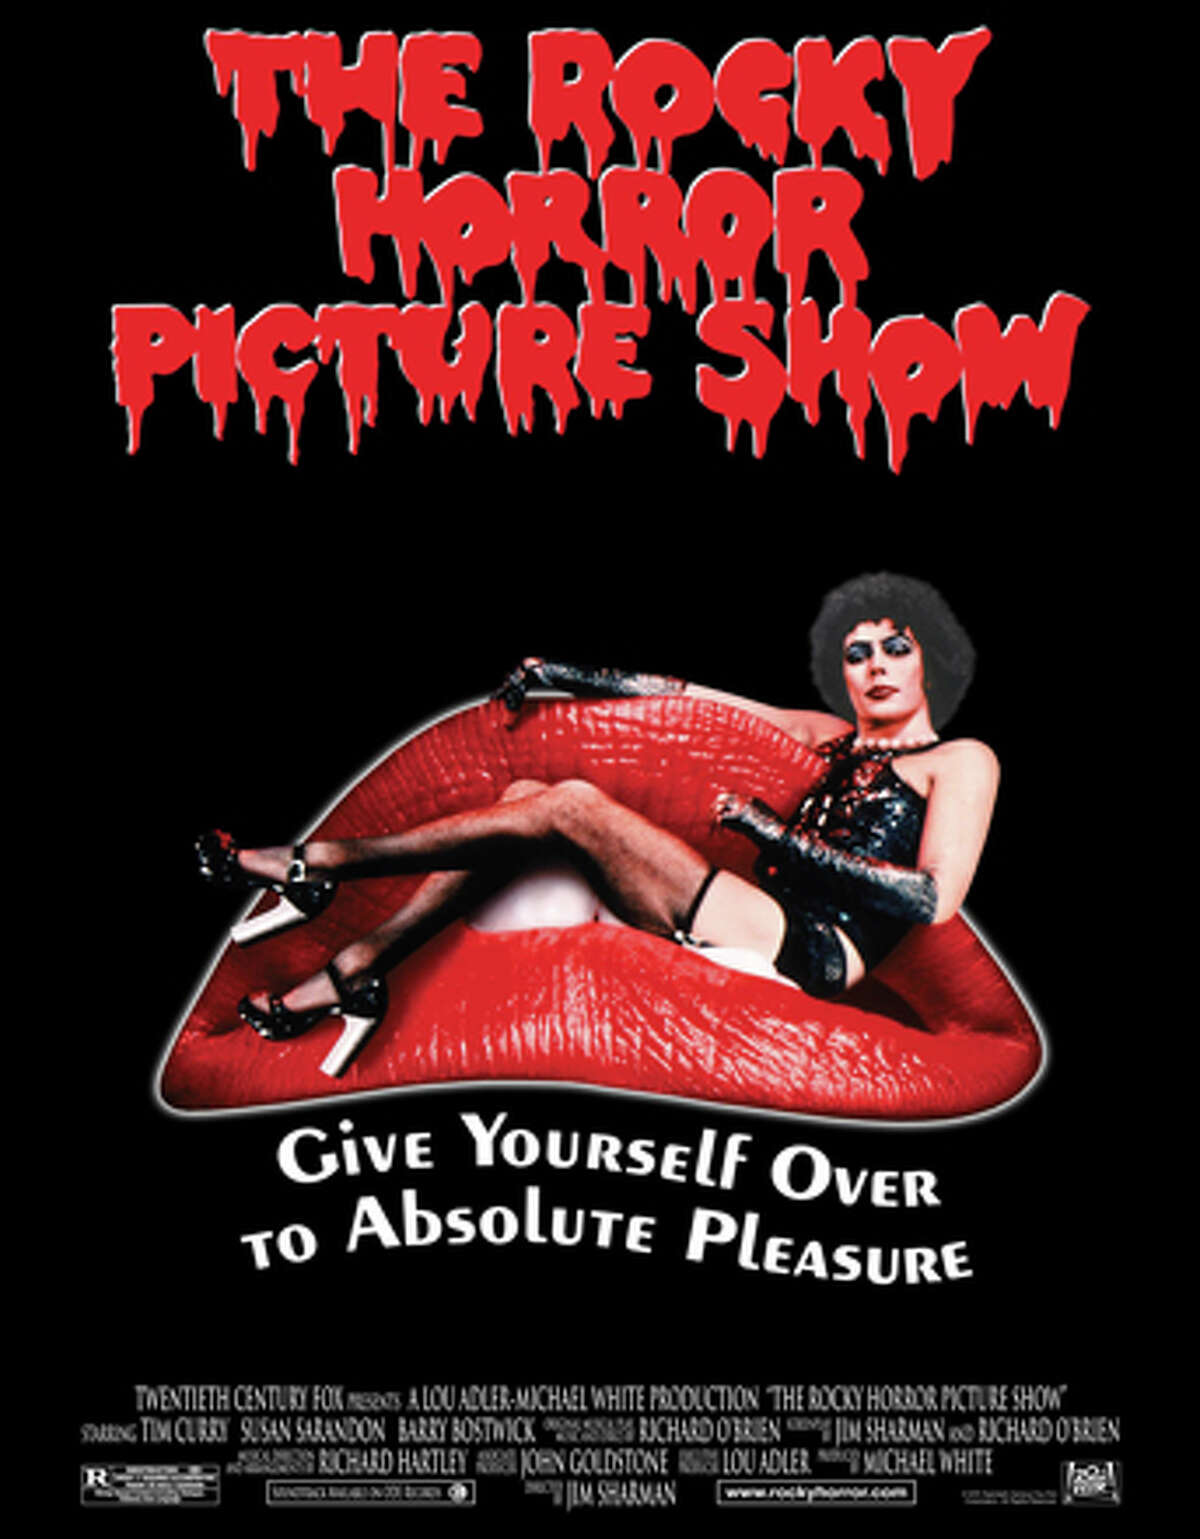 A screening of The Rocky Horror Picture Show, a 1975 musical comedy horror film. When: Friday, Oct. 23, 7 p.m. Where: The Palace Theatre, 19 Clinton Ave., Albany. For more info and tickets, visit the website.